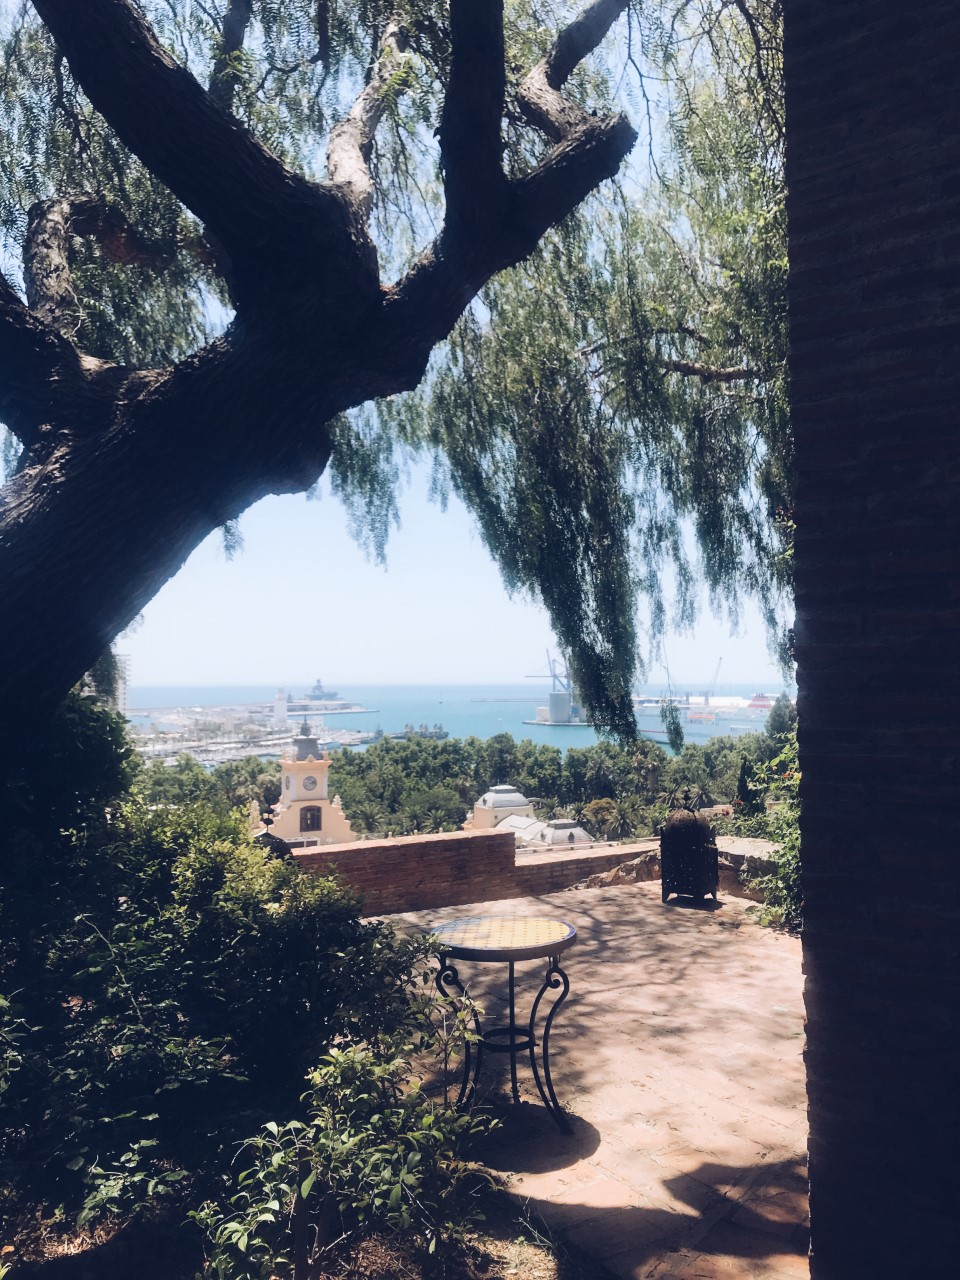 View from the cafe at Alcazaba Castle Gardens.